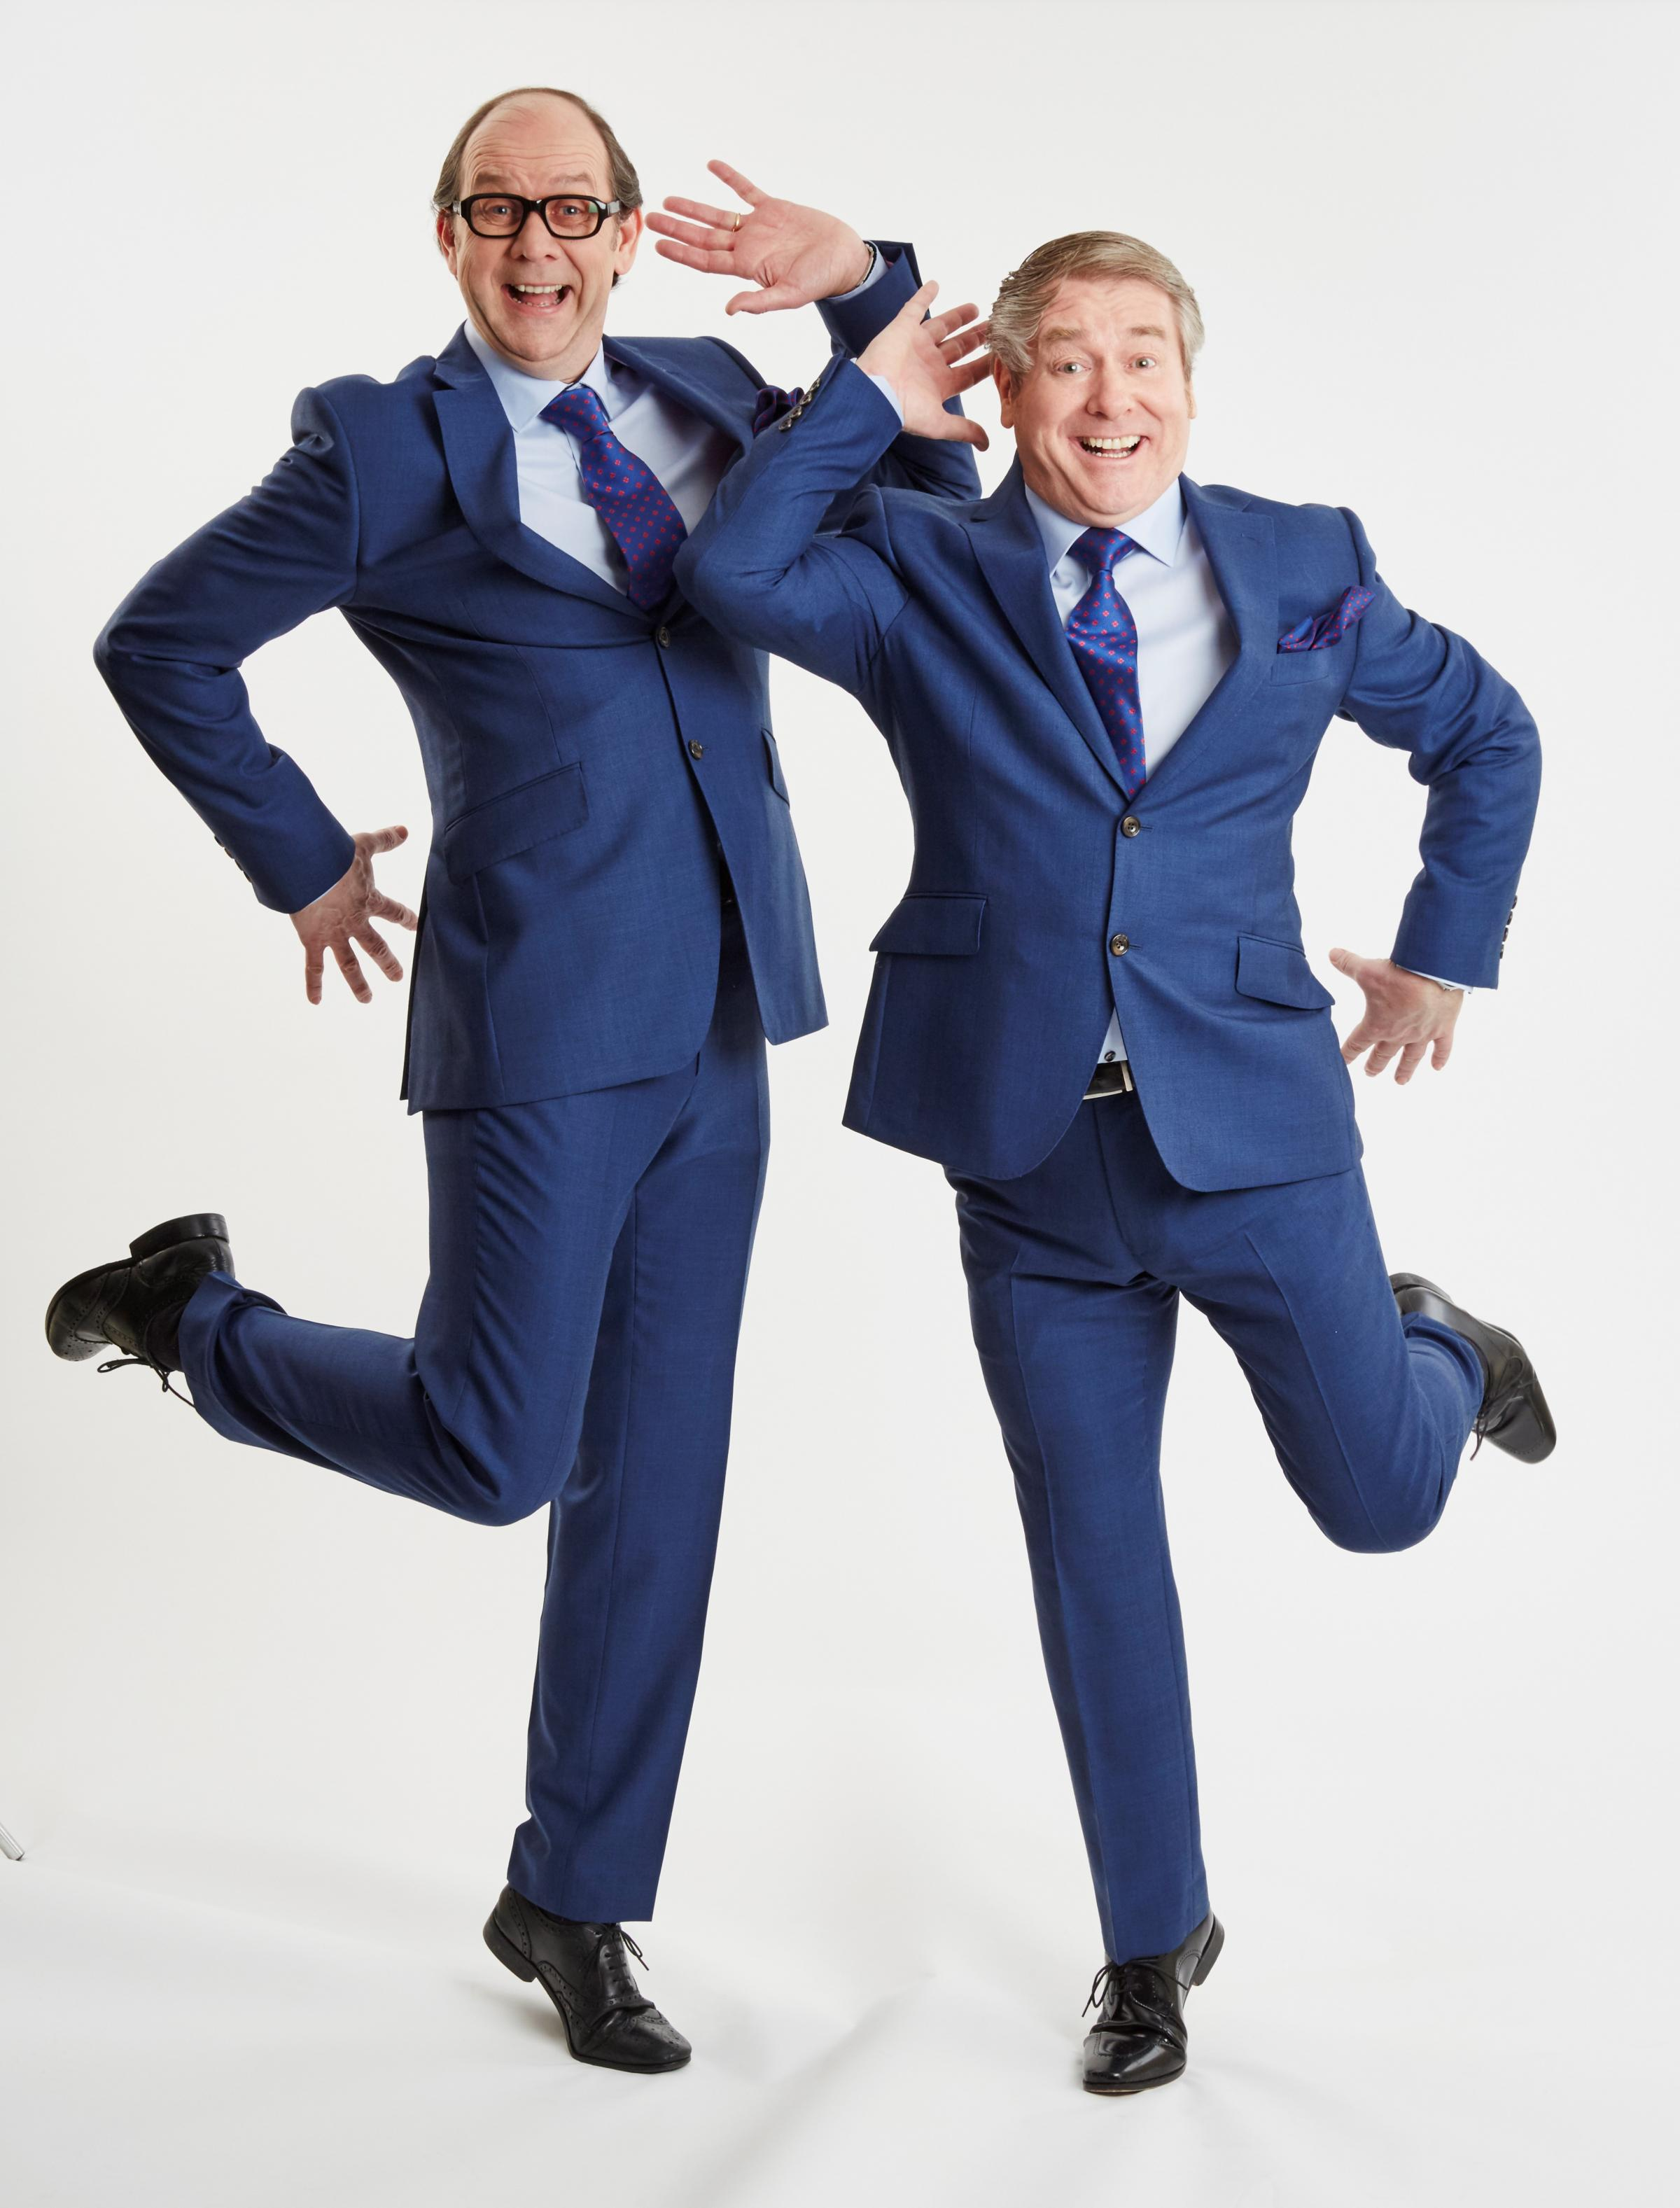 Enjoy and evening with Eric and Ern at the Octagon